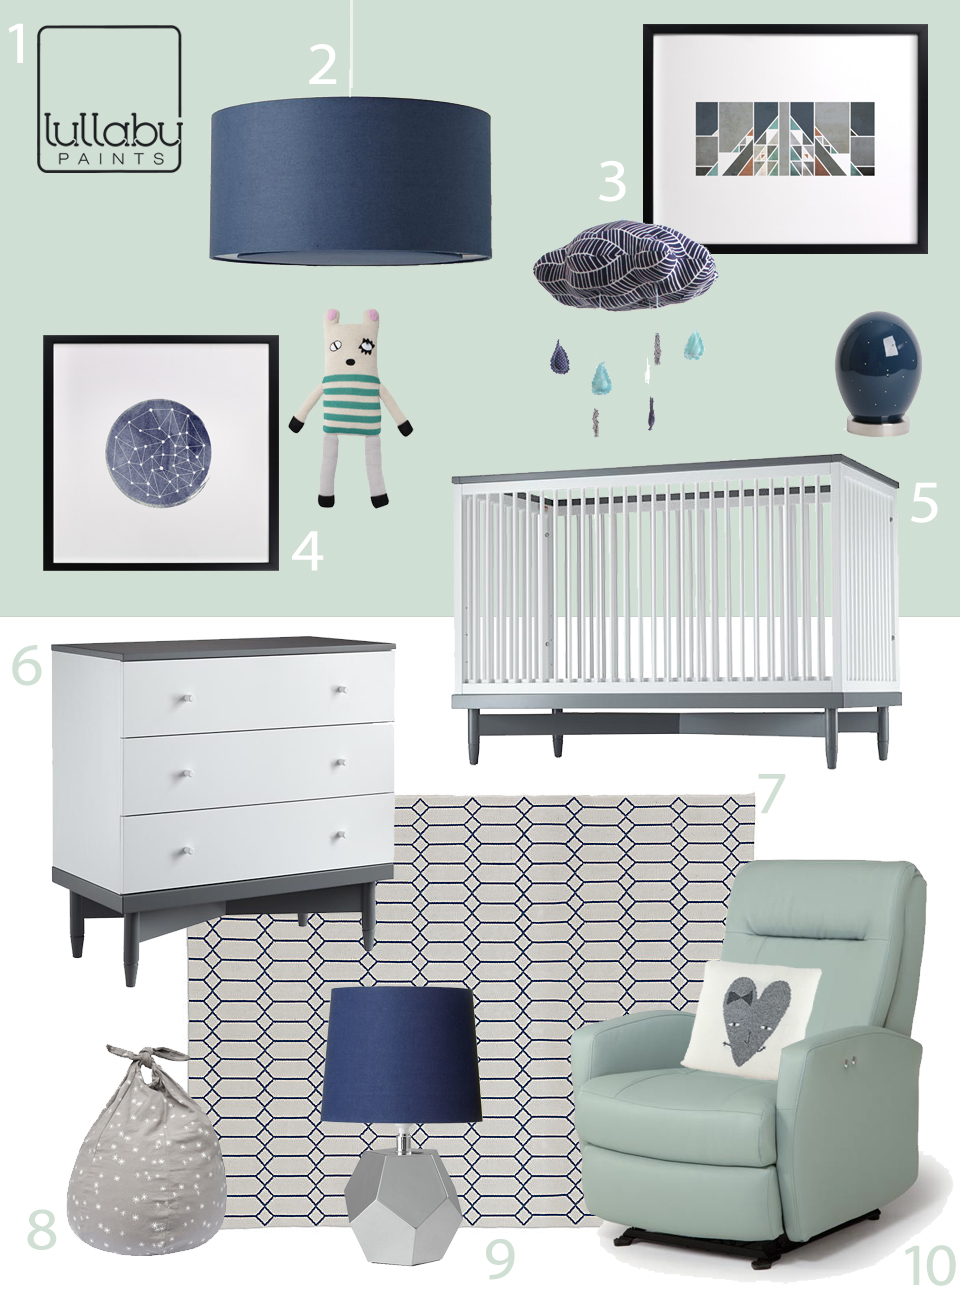 My Modern Nursery 71 Cool and Calm in Aqua and Navy